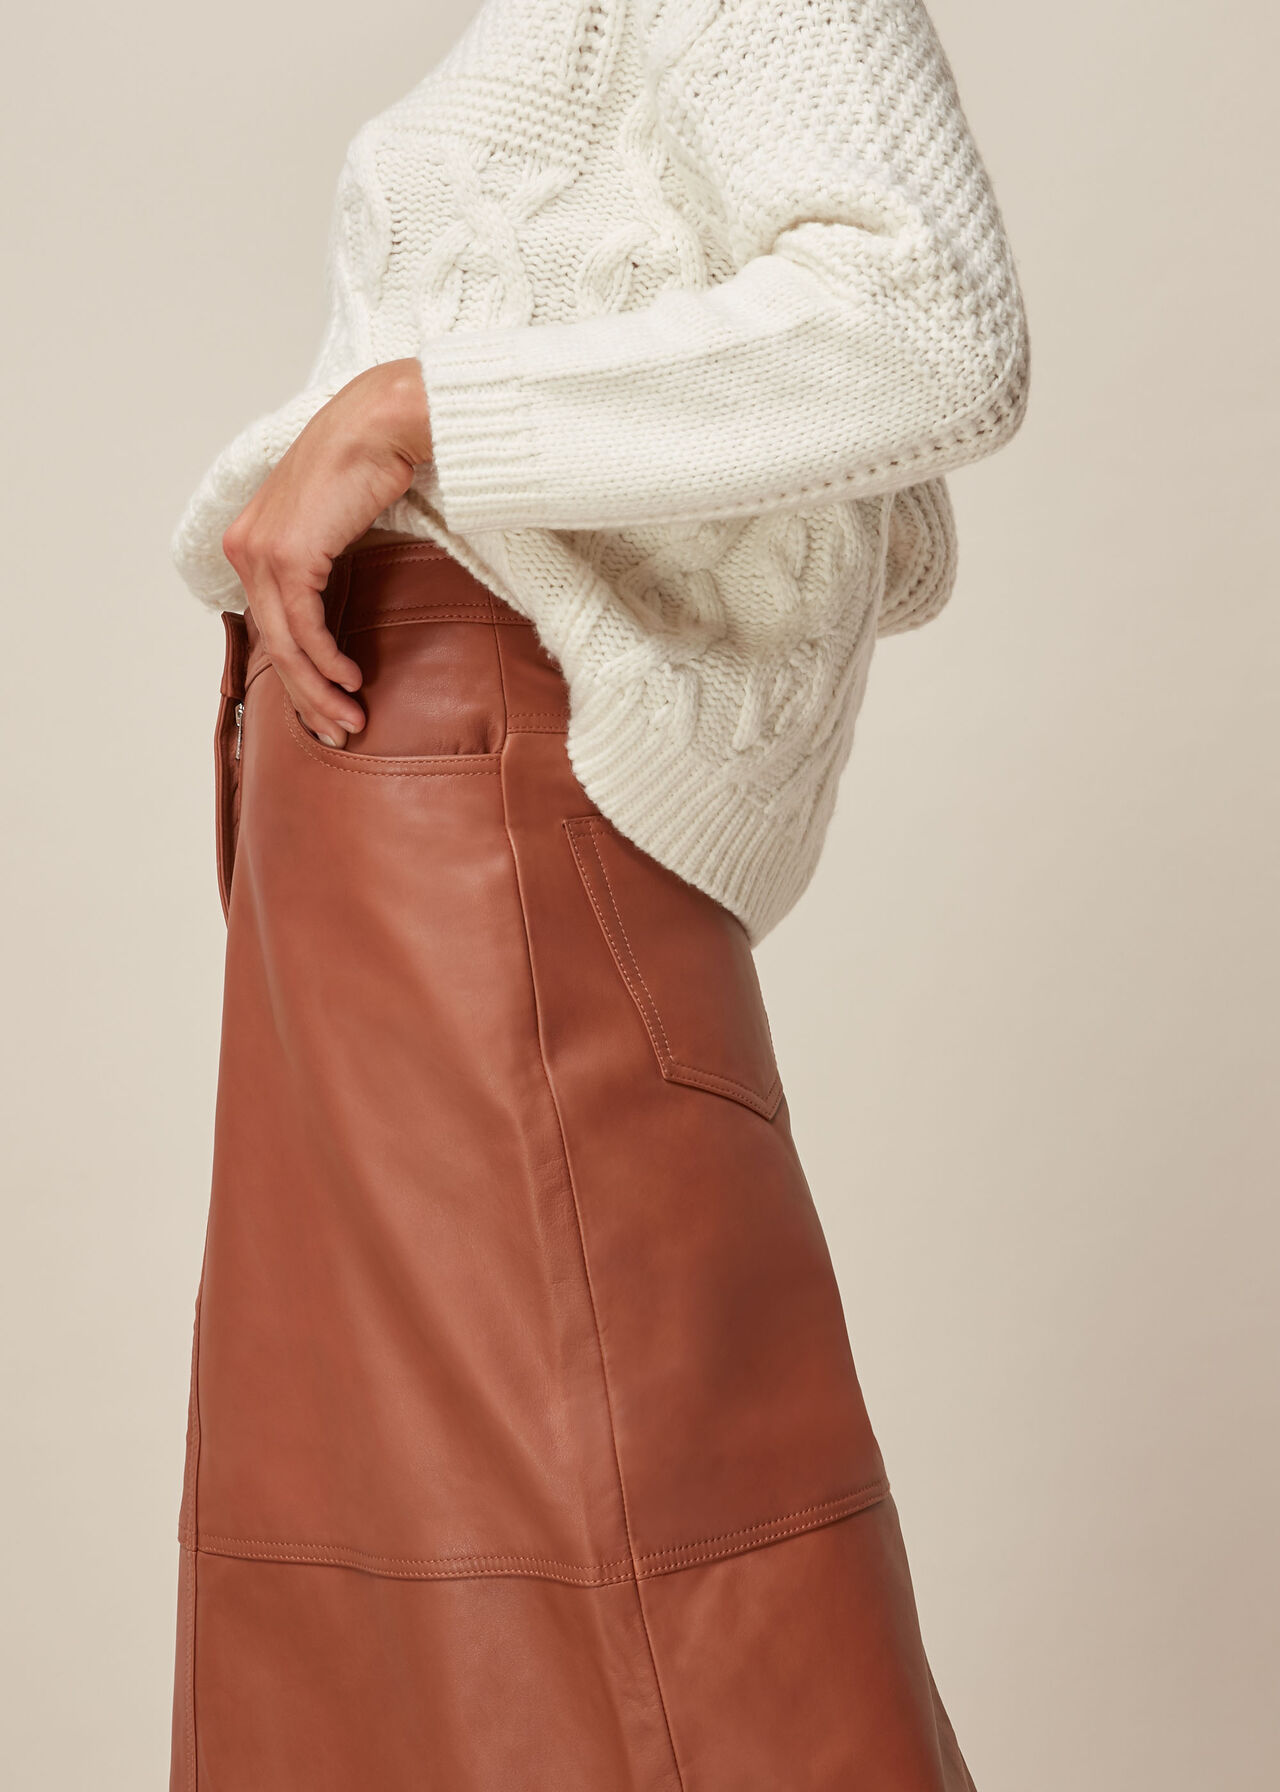 Panelled Leather Skirt